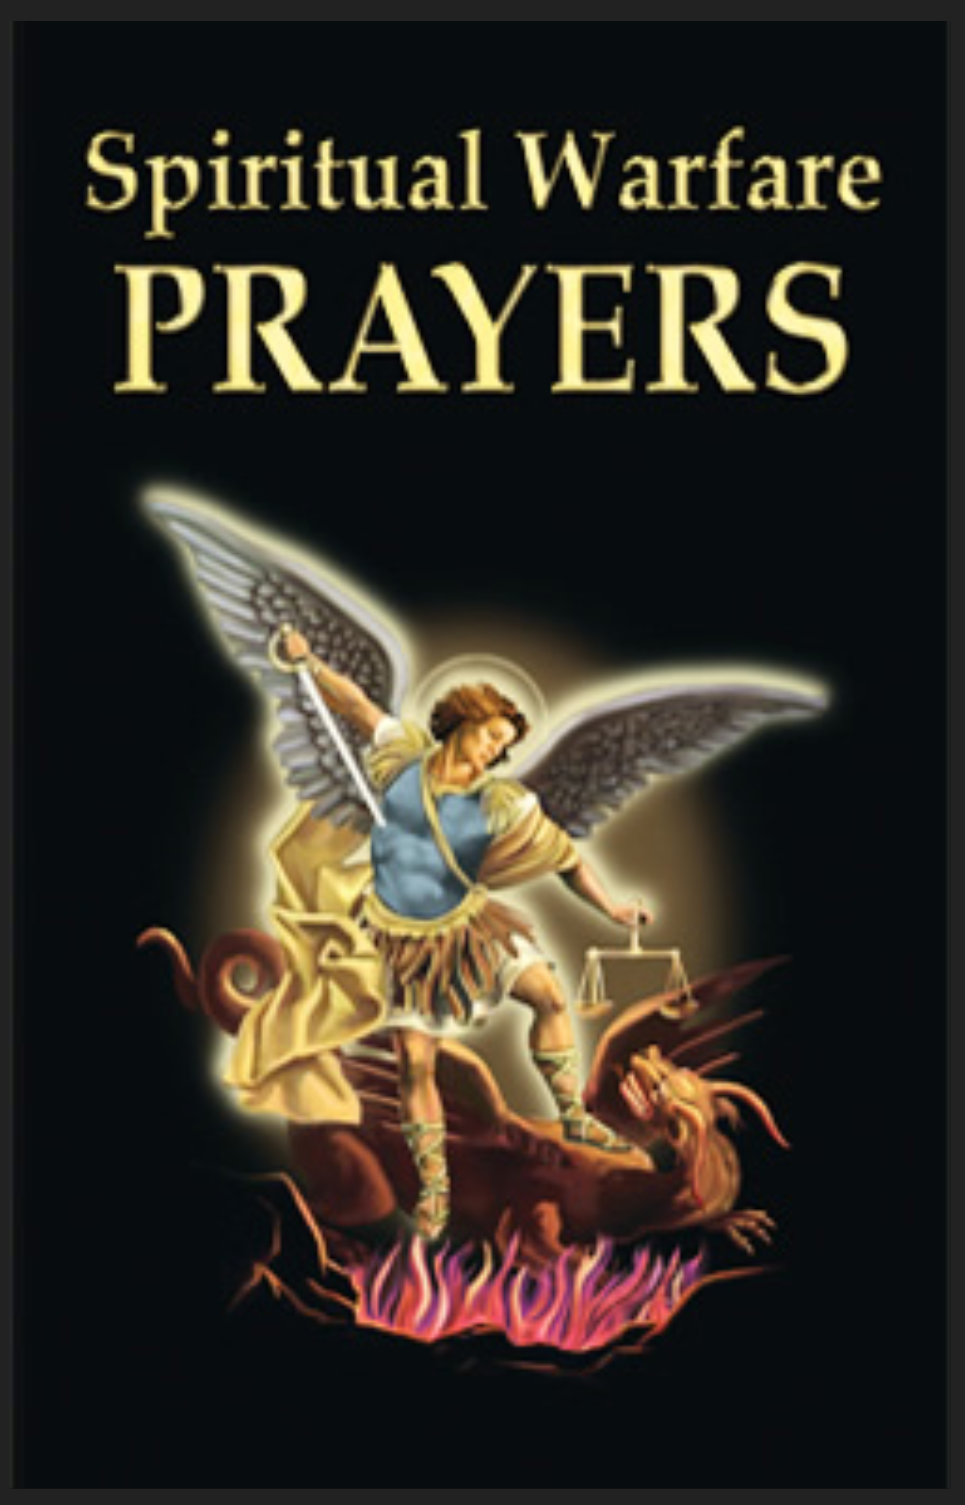 Spiritual Warfare Prayers -32 Page Prayer Booklet -Robert Abel -FREE SHIPPING!